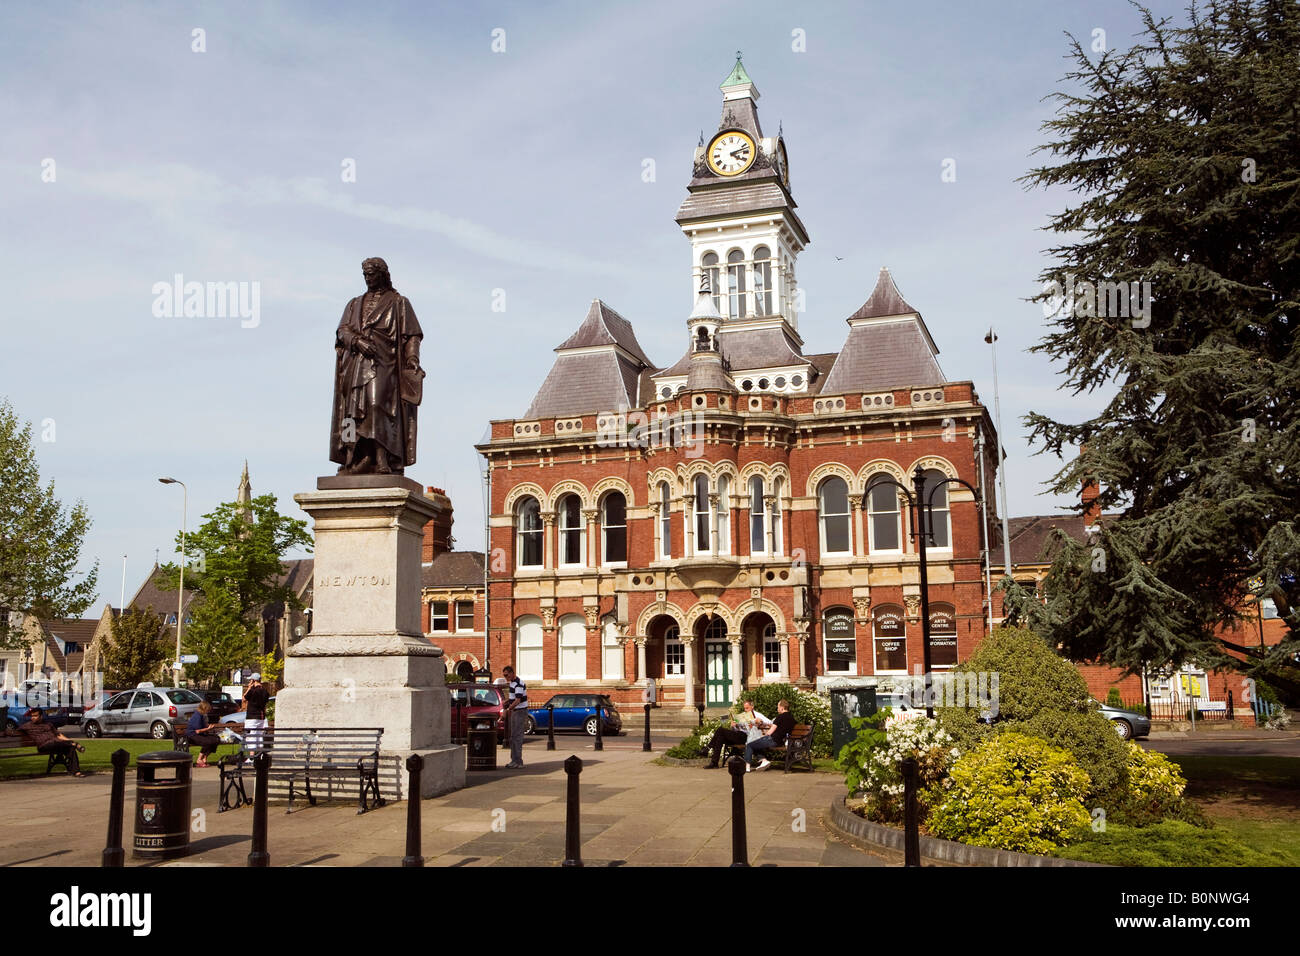 UK England Lincolnshire Grantham St Peters Hill Town Hall and Isaac Newton Statue - Stock Image